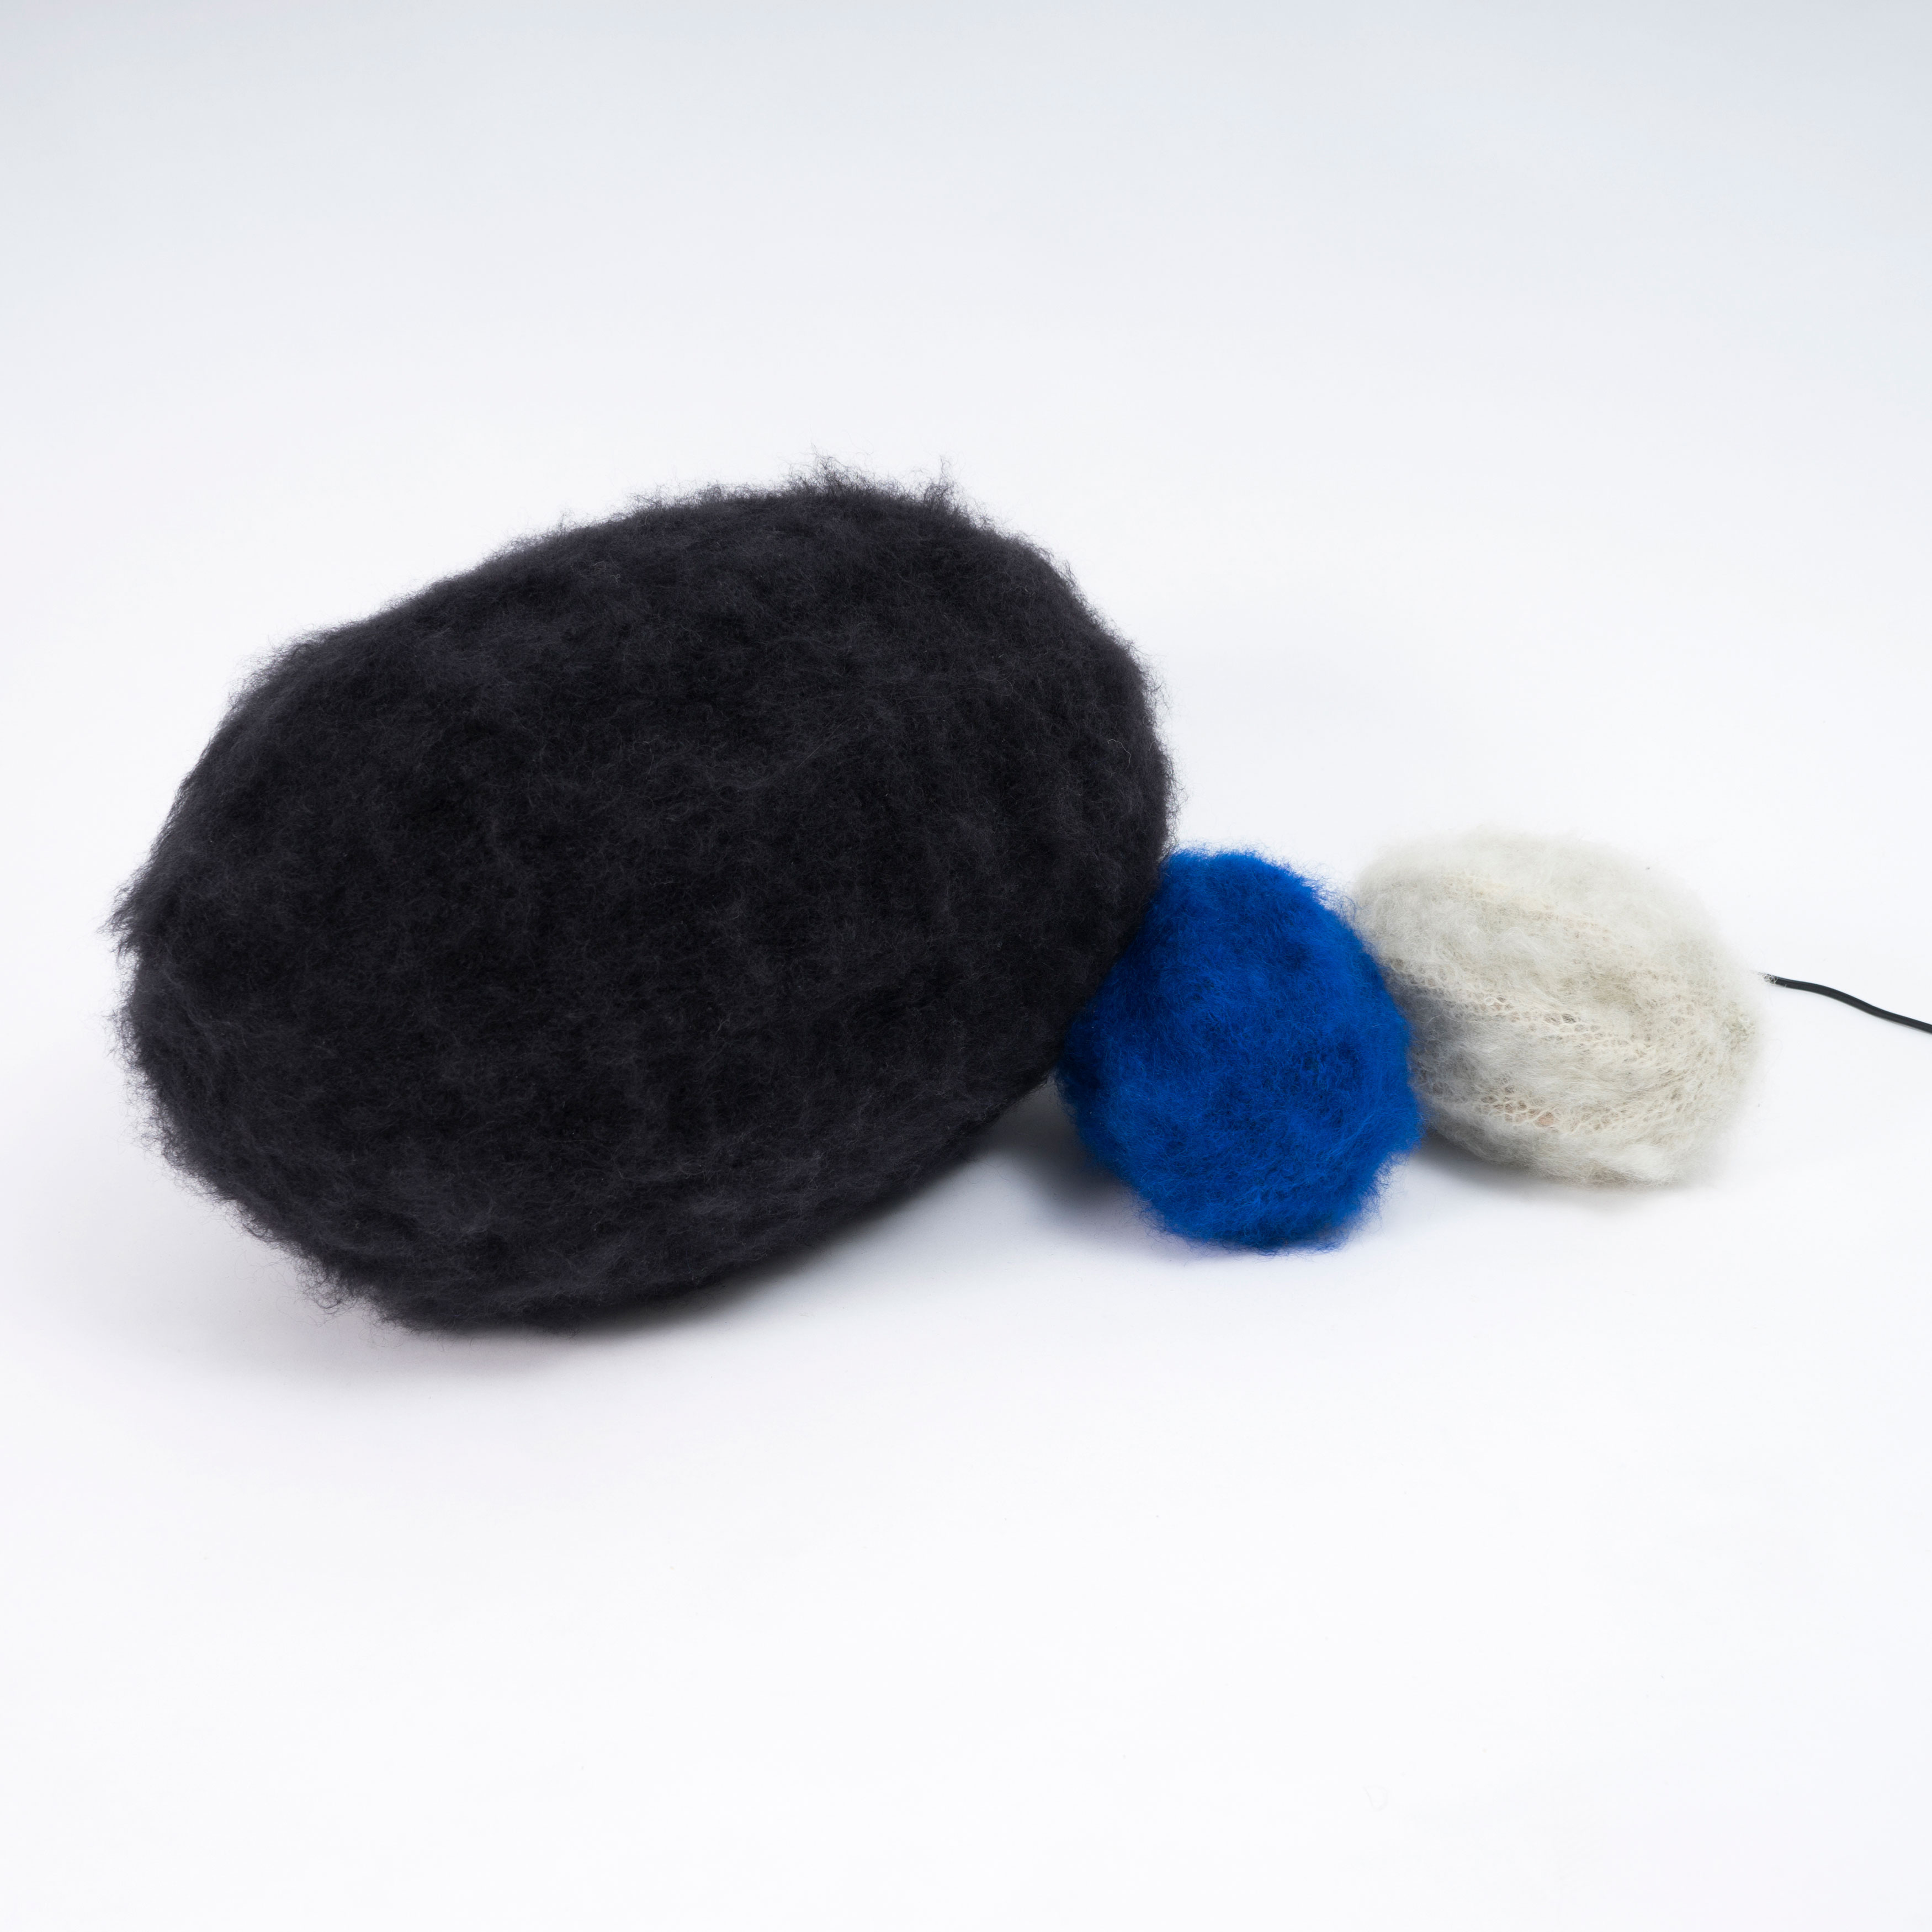 Knitted speaker_02_AmbjornViking_lr